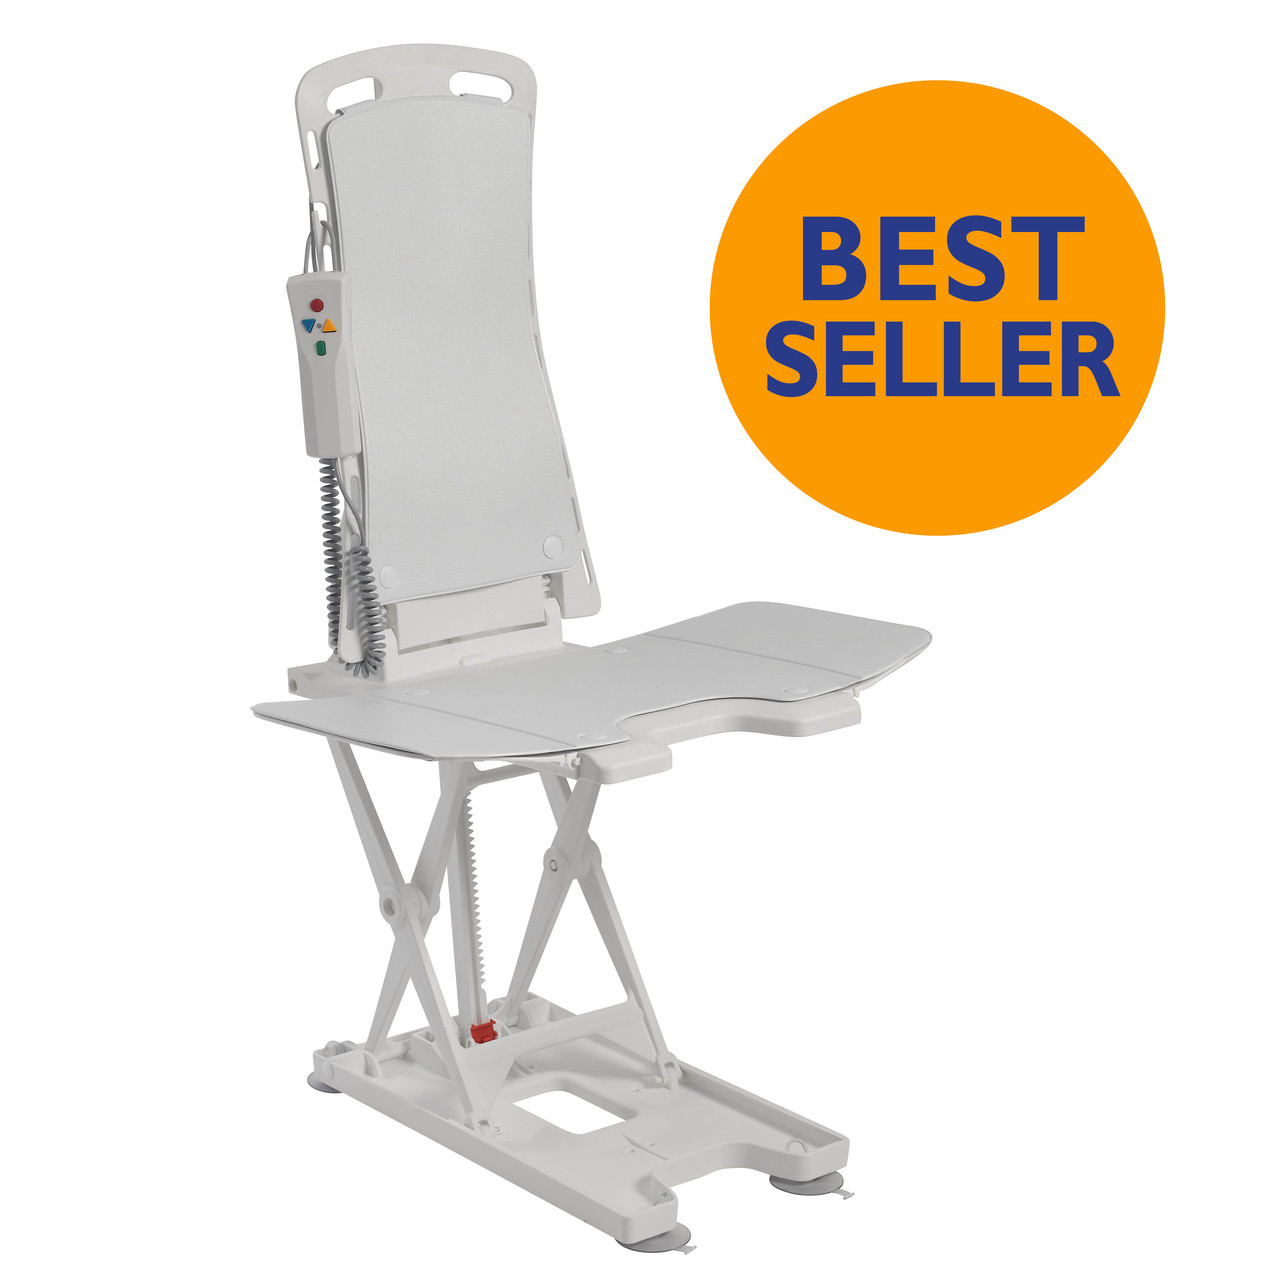 Bath Chair Lift Bellavita Auto Bath Tub Chair Seat Lift Bath Lift For